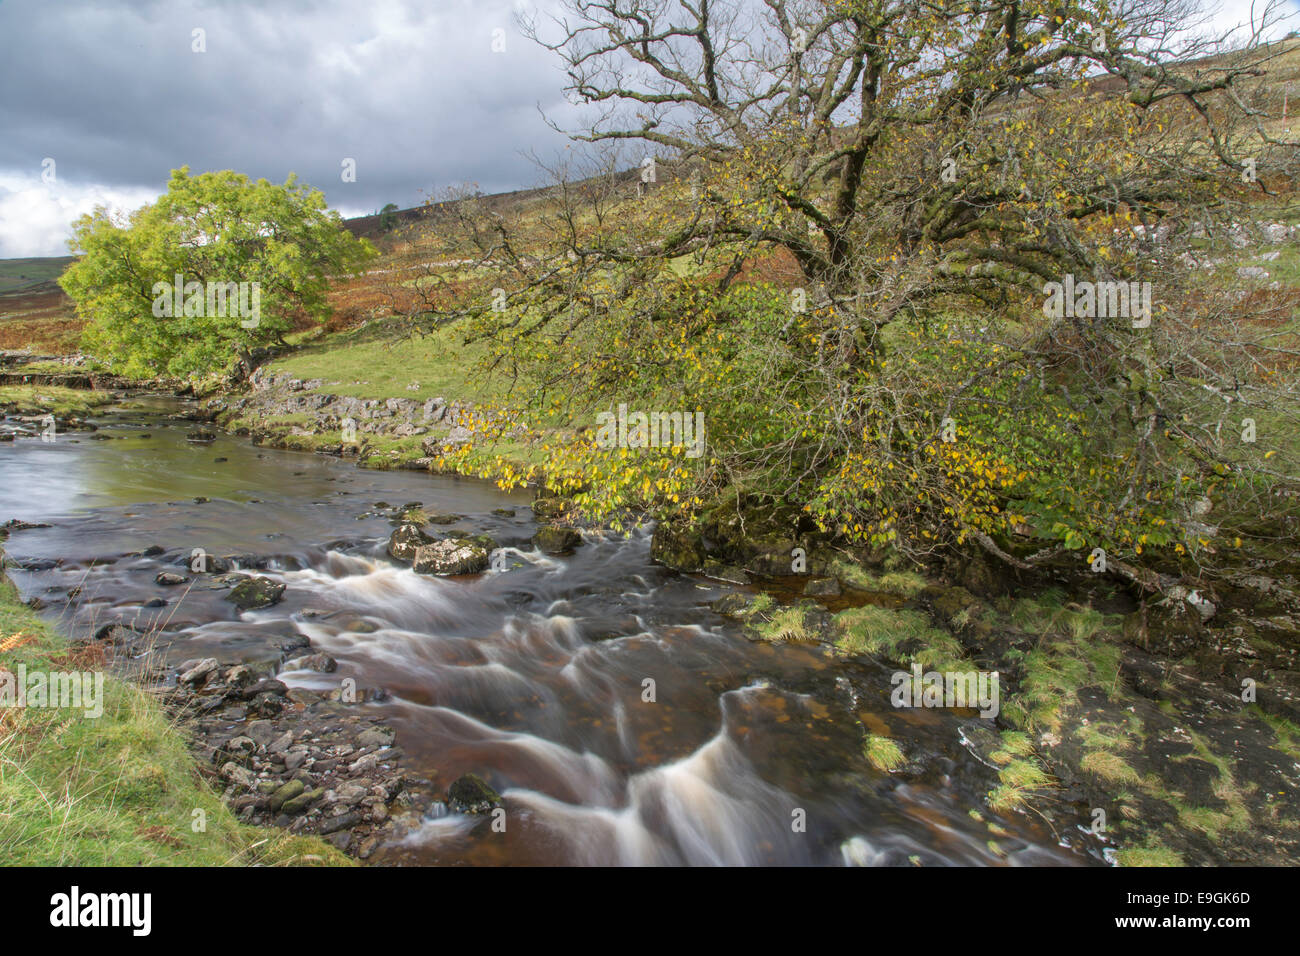 Autumn on the River Wharf near Yockenthwaite in Upper Wharfdale, Yorkshire Dales National Park, North Yorkshire, - Stock Image